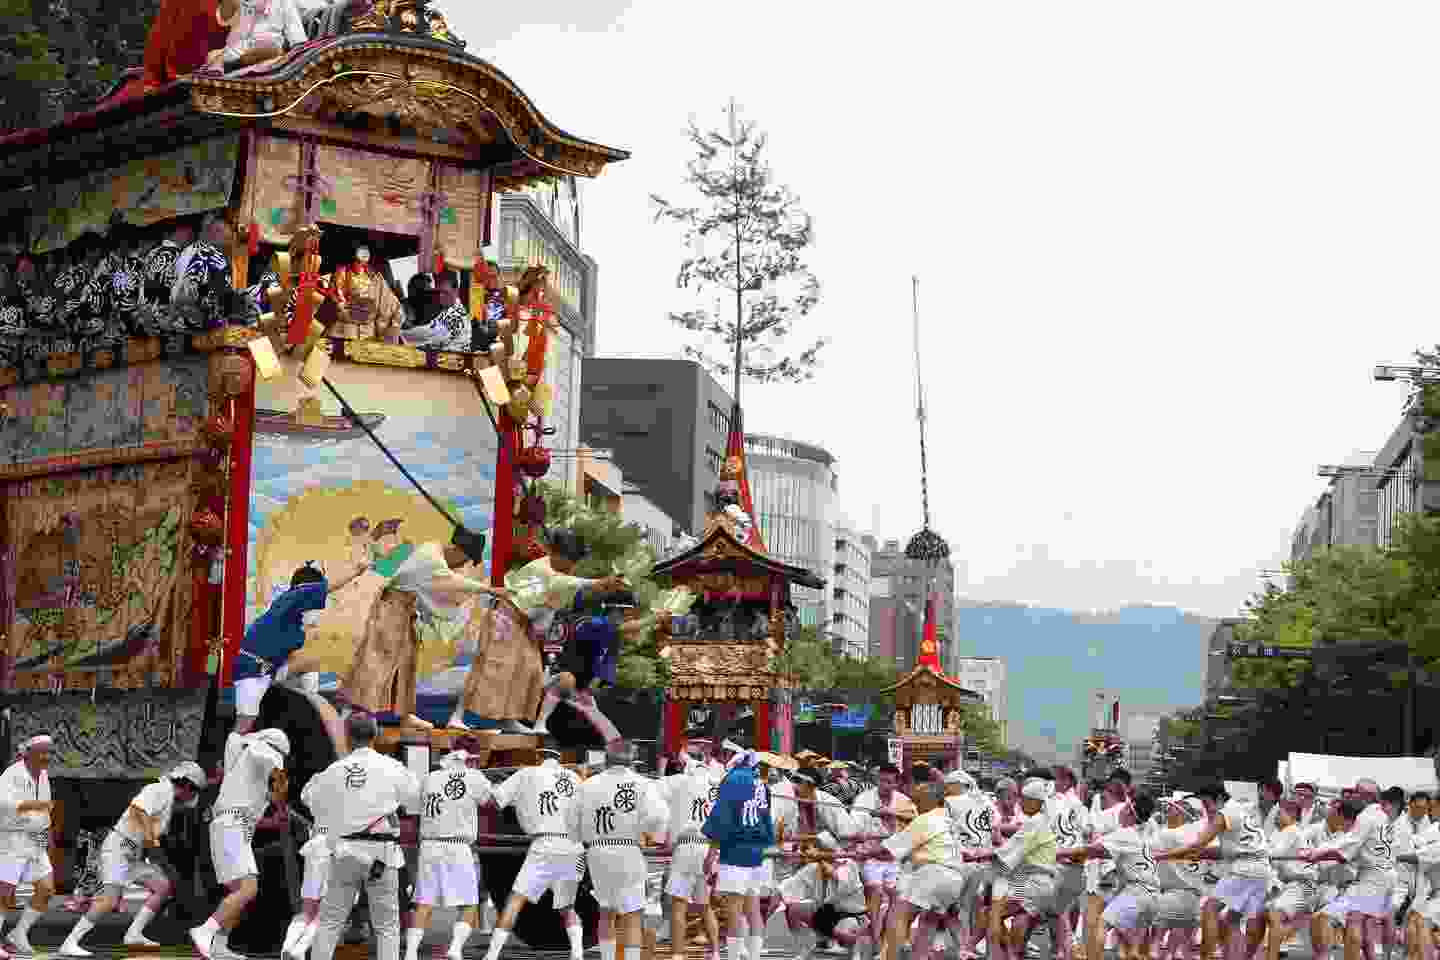 Kyoto's Gion Festival is one of Japan's biggest (Shutterstock)